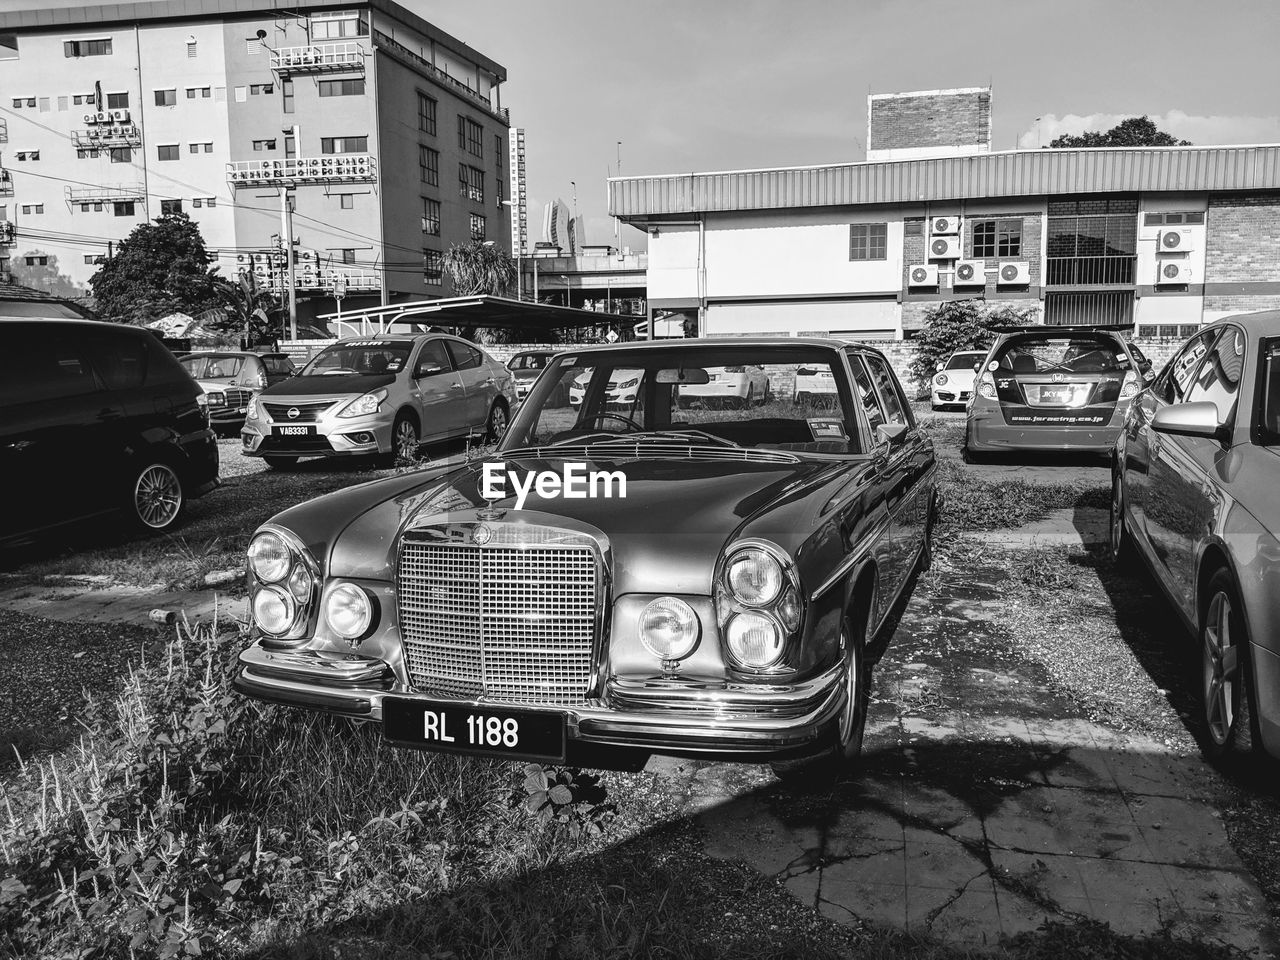 mode of transportation, building exterior, transportation, car, motor vehicle, land vehicle, built structure, architecture, city, retro styled, day, street, vintage car, building, sky, nature, no people, outdoors, ruined